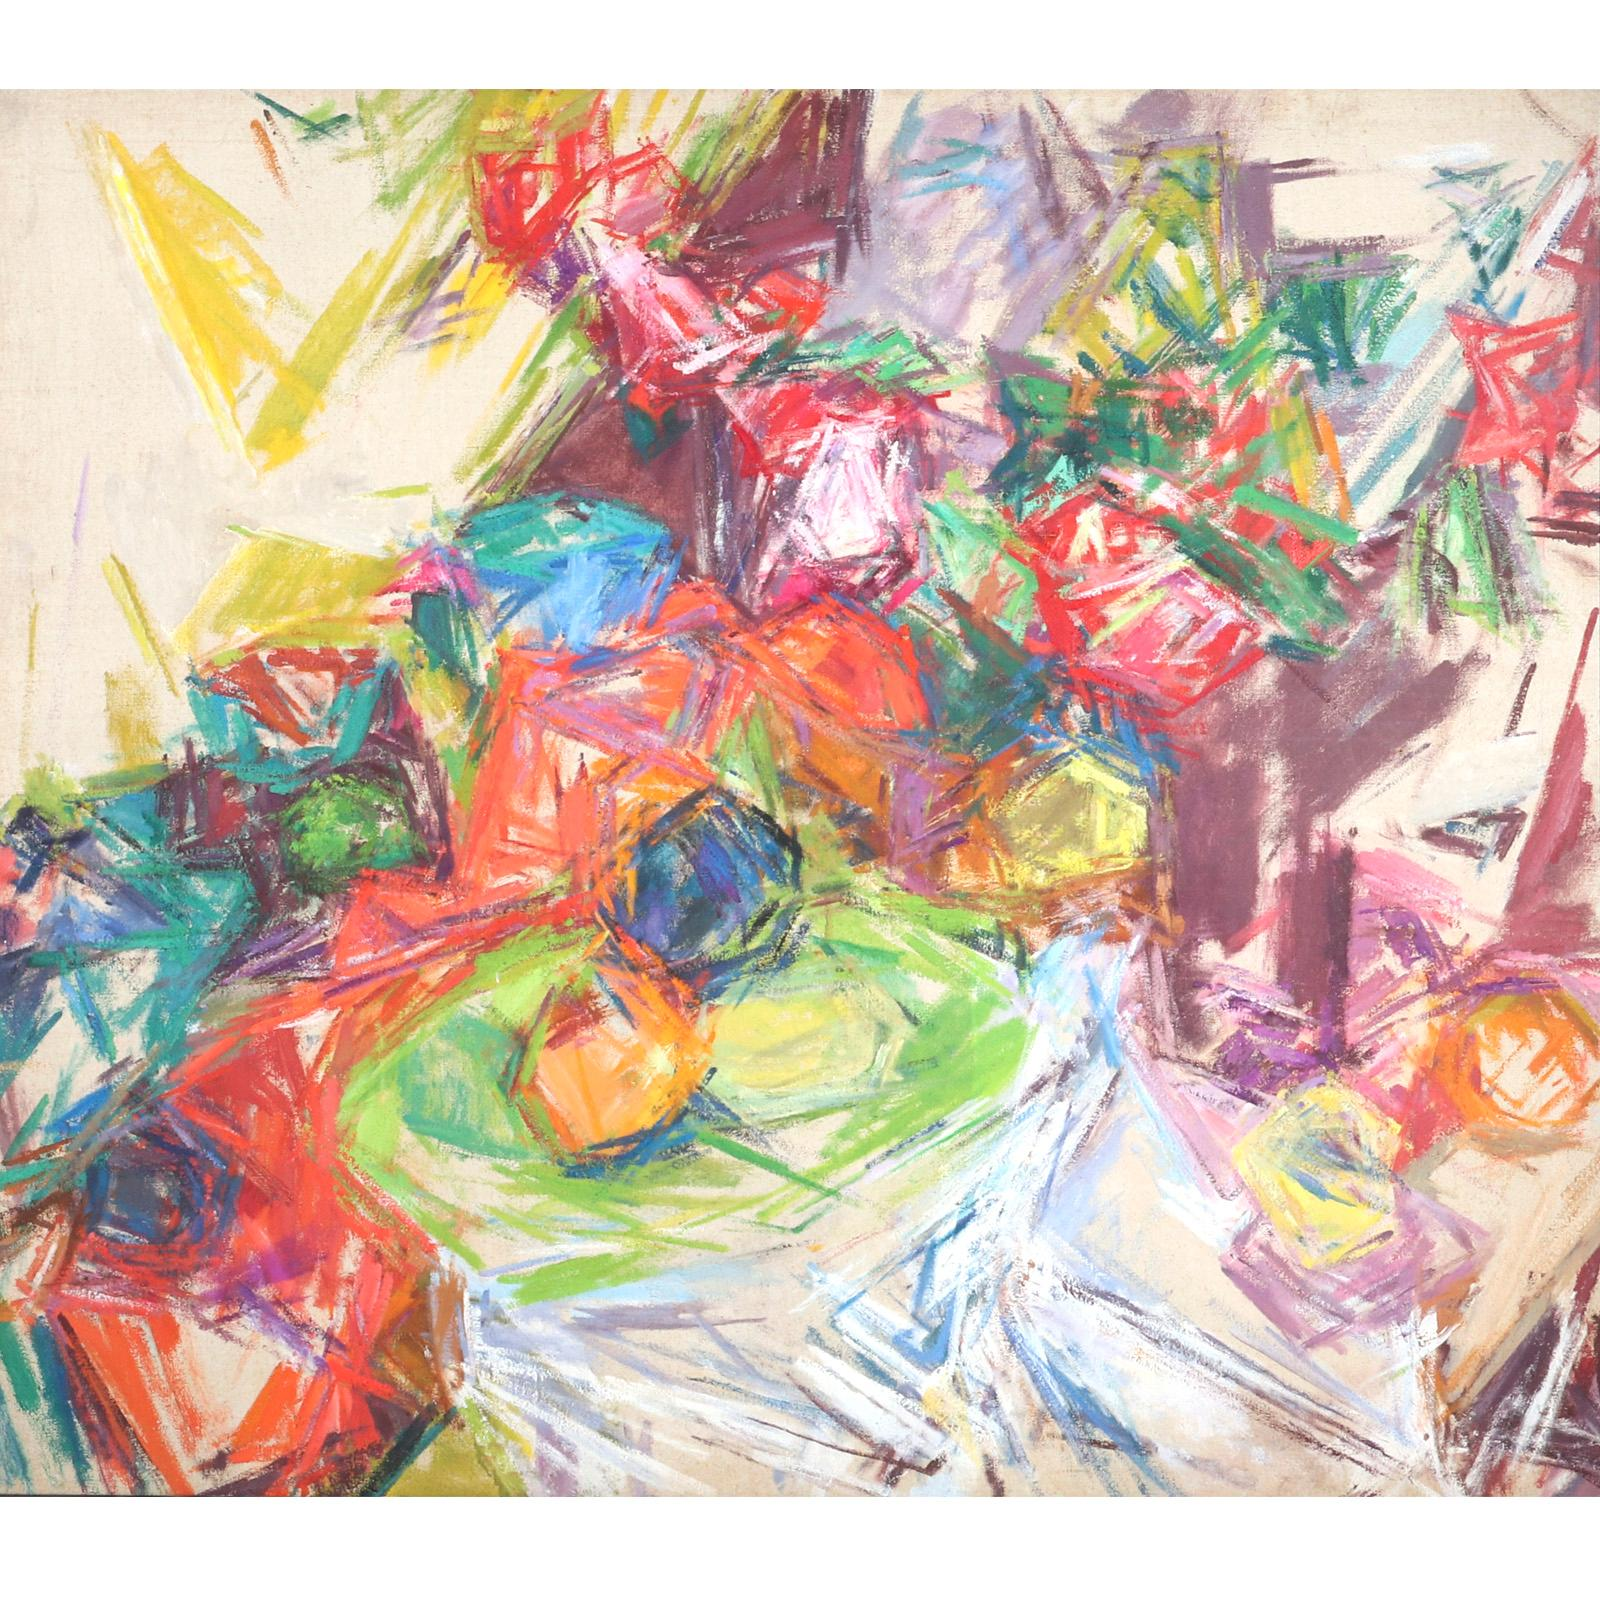 """Mercedes Carles Matter, (American, 1913-2001), untitled still life, 1962, oil on canvas, 43""""H x 49 1/2""""W (image) 45""""H x 51 1/4""""W (frame)"""